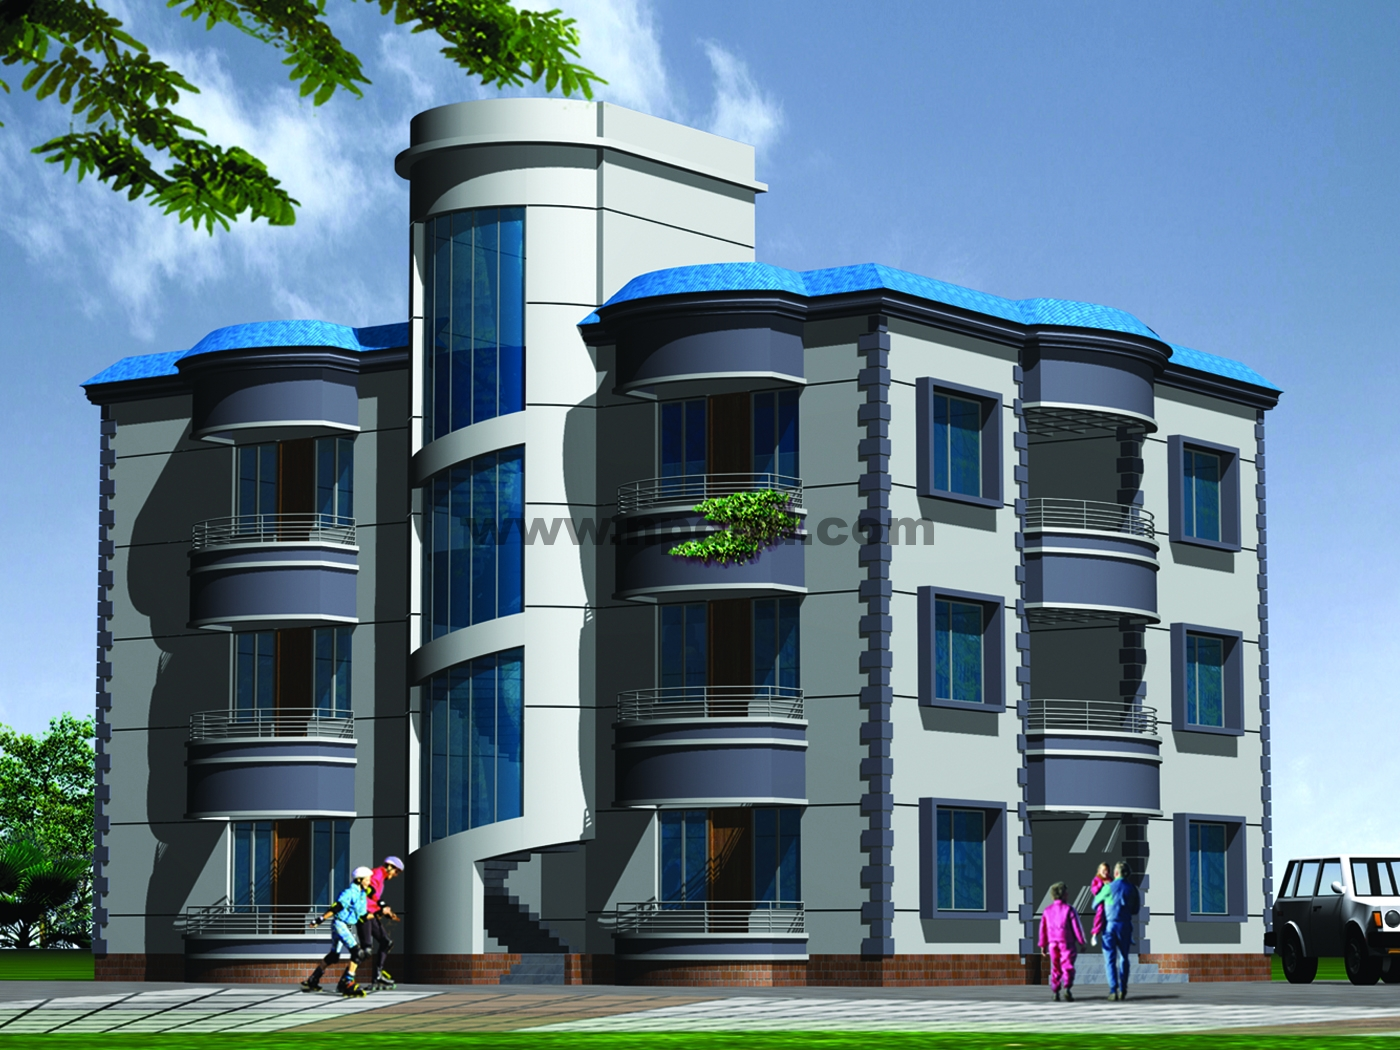 3D Building View http://www.npdbd.com/projects/view/92/Syed_Nibash/Mohammed_Pur_South_Surma_Sylhet